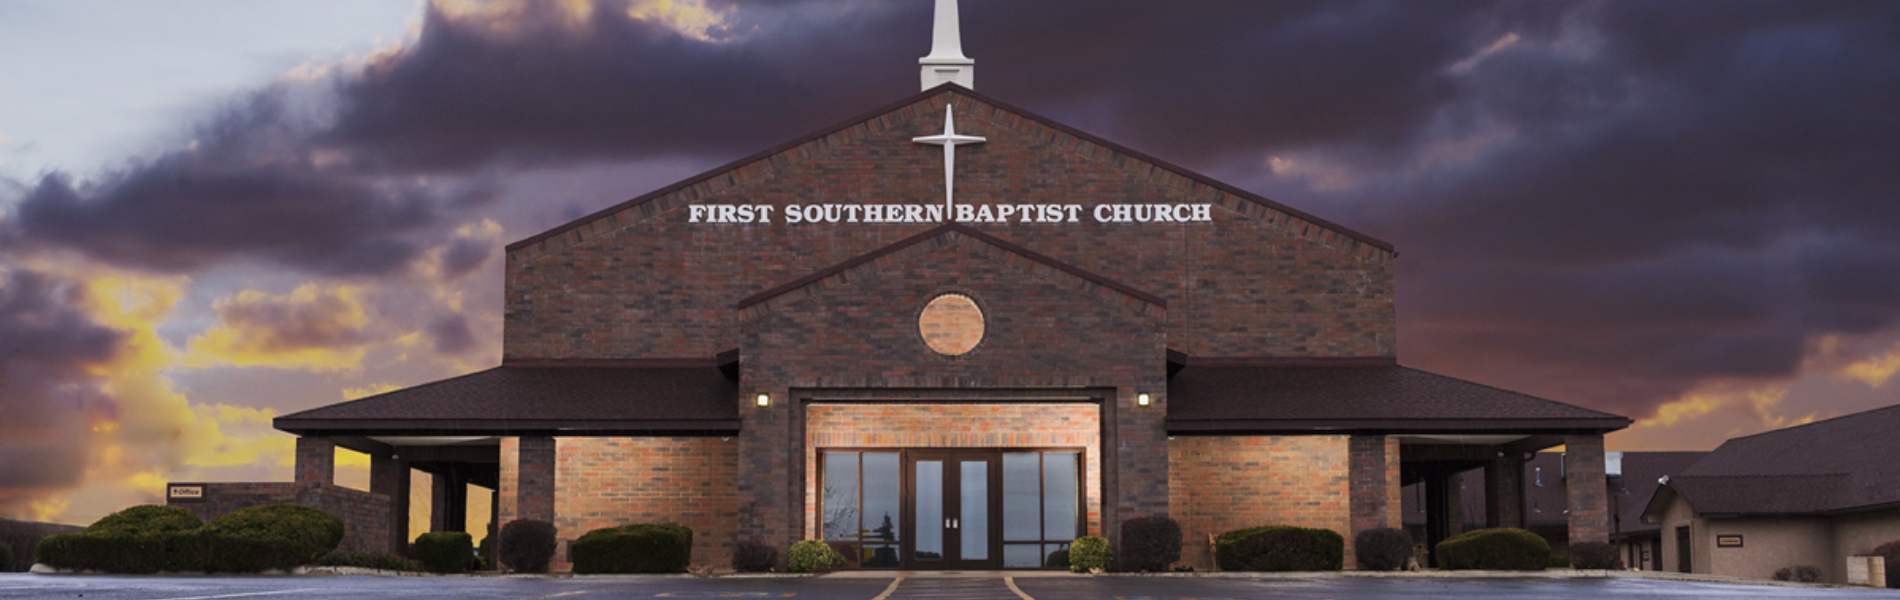 First Southern Baptist Church Of Prescott Valley - Southern baptist in us map